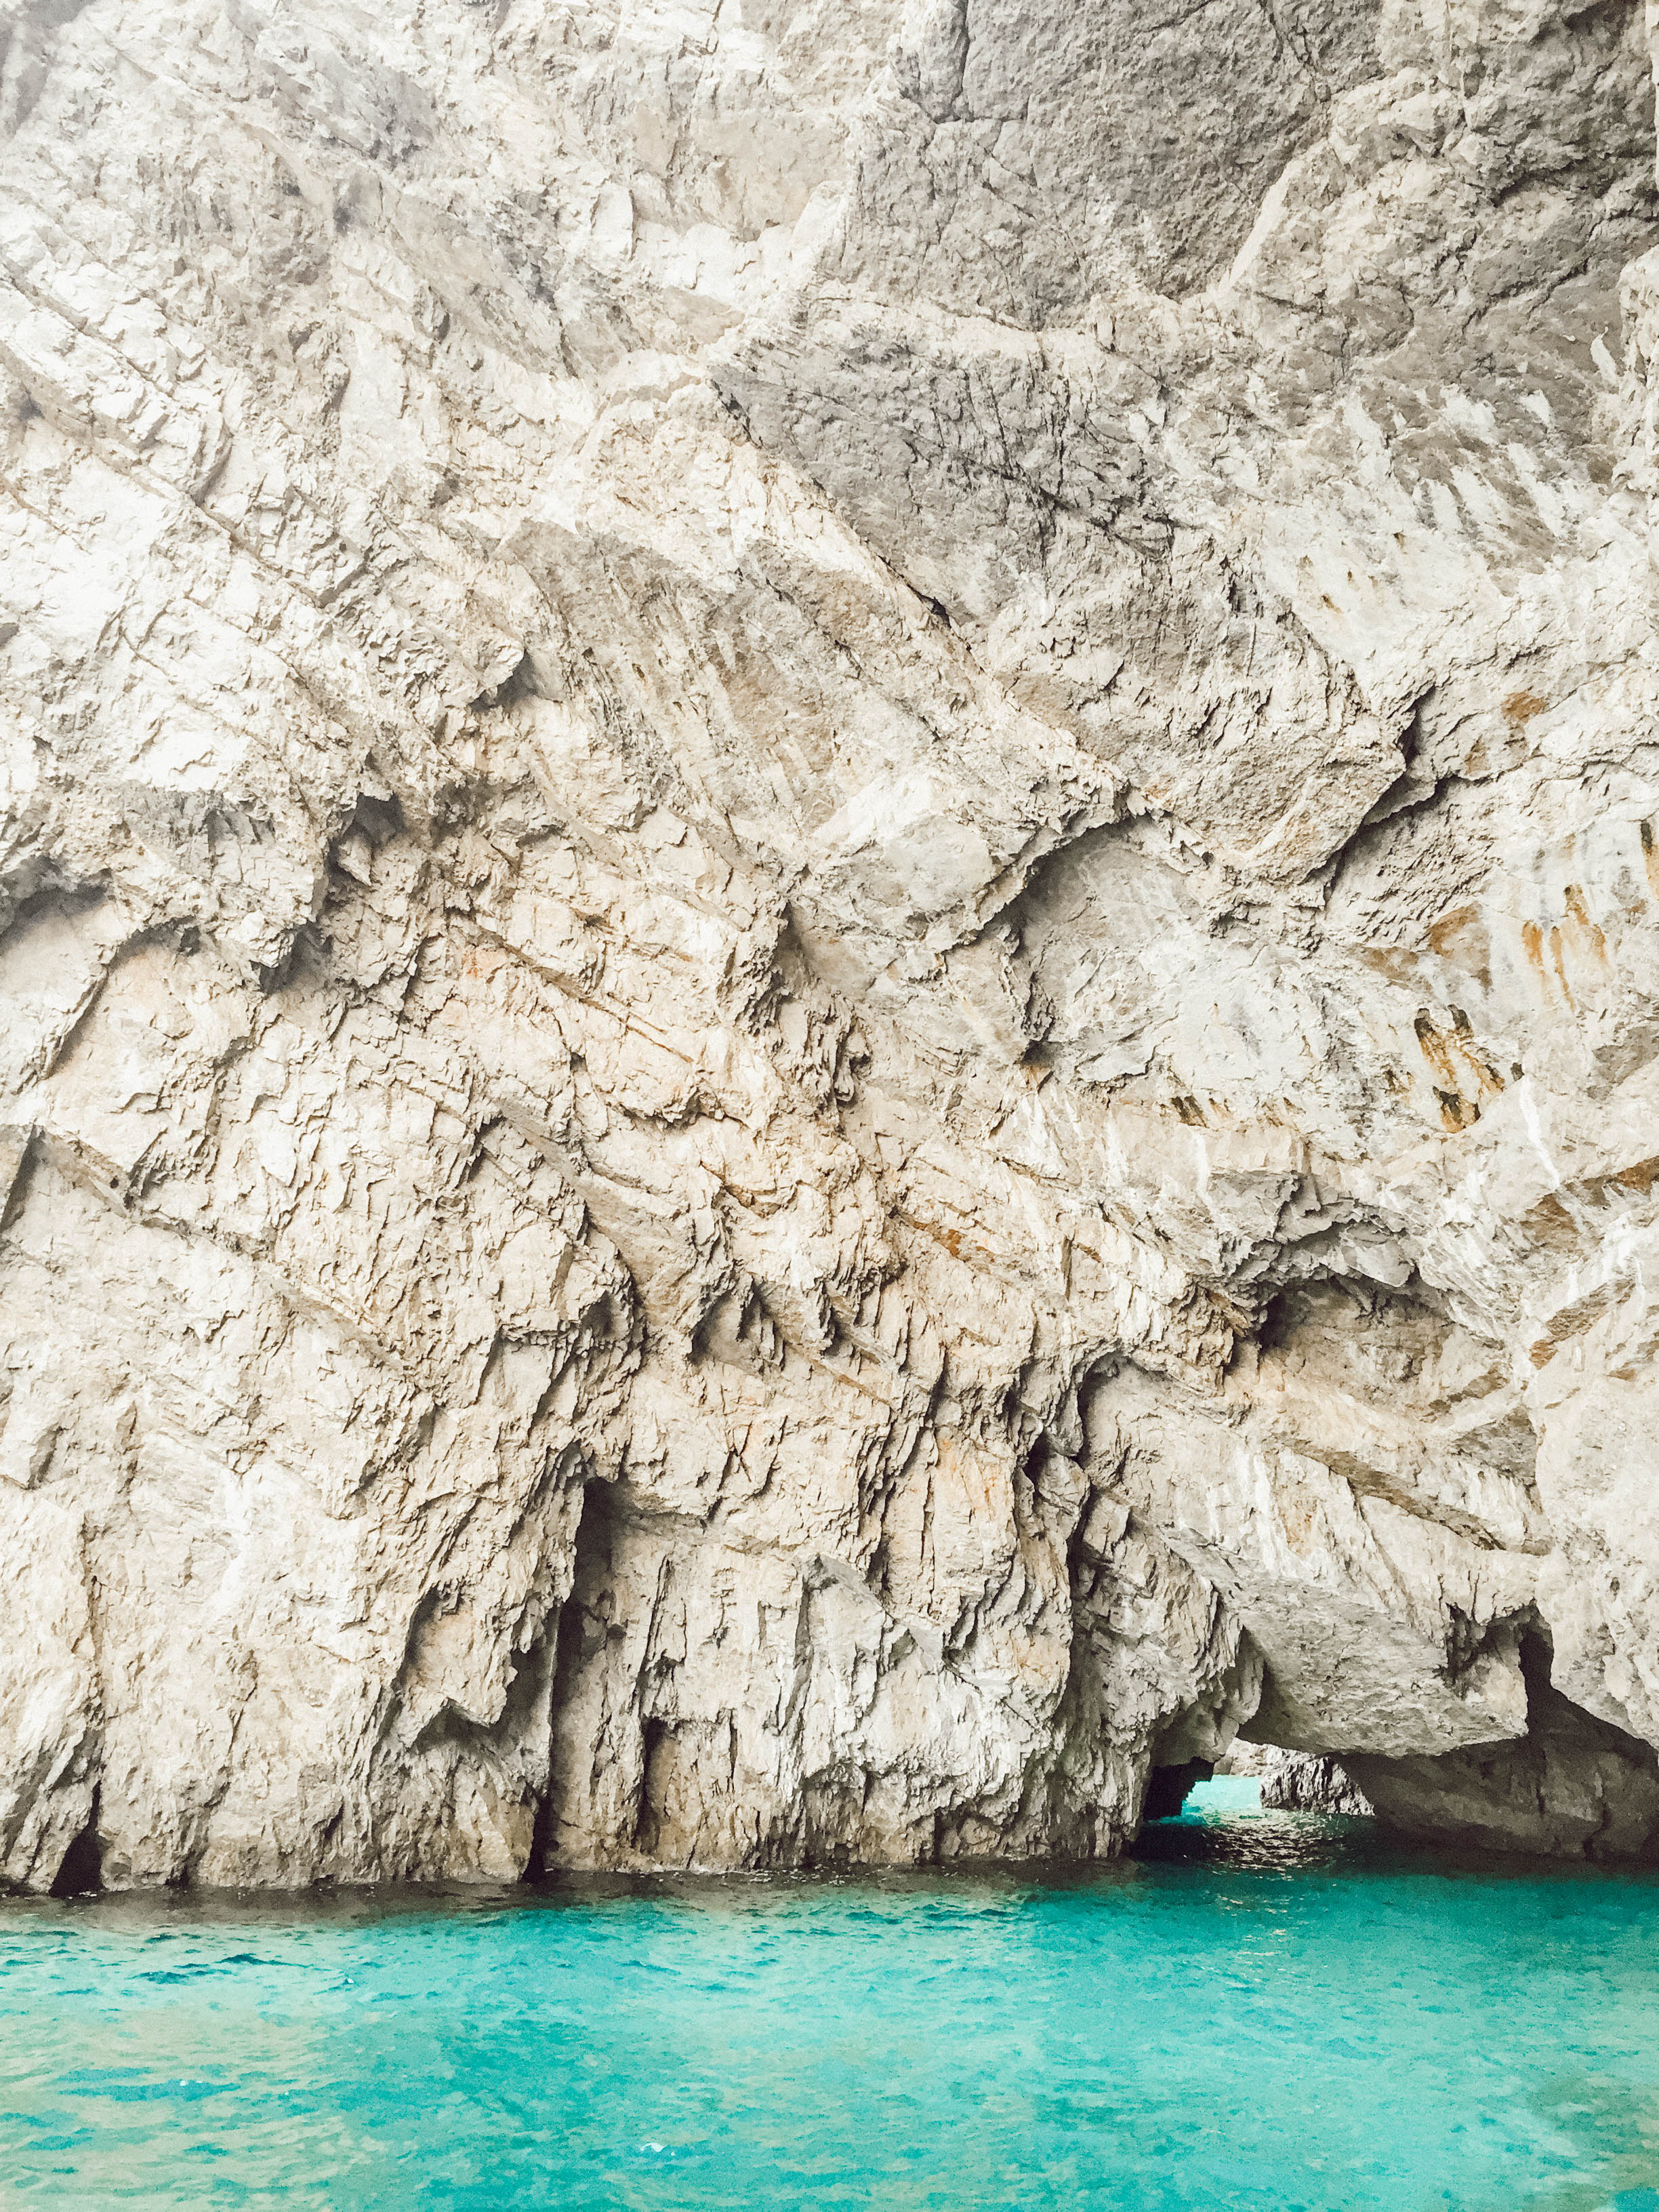 The Beautiful formations of Capri